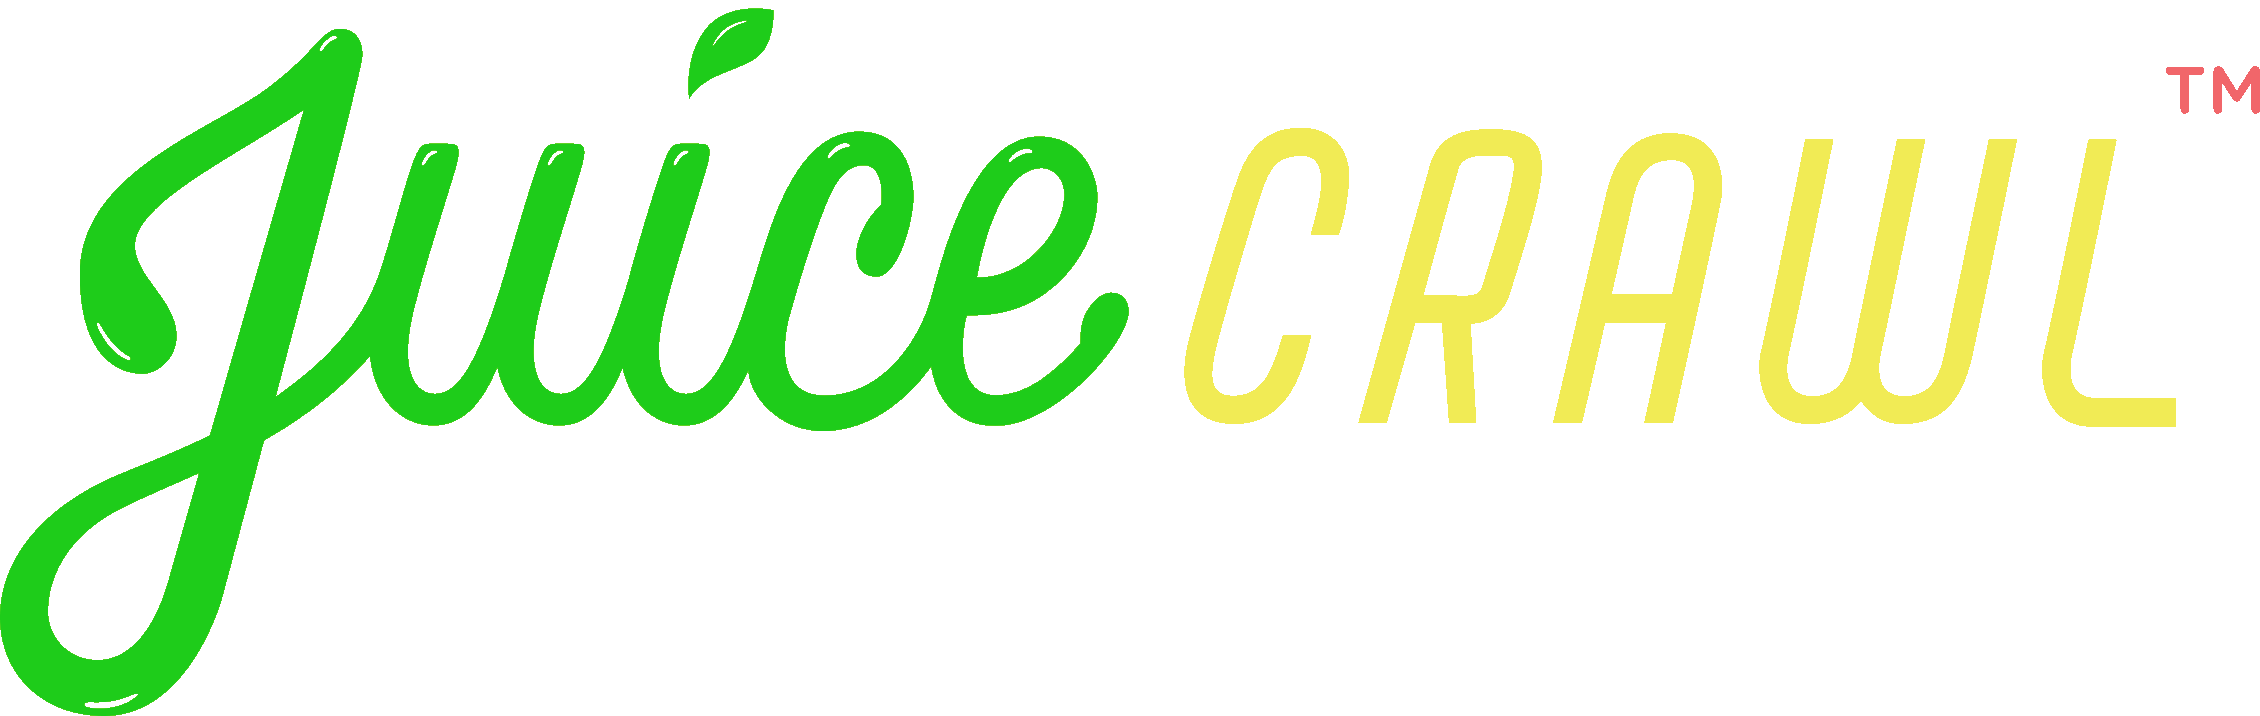 Juice Crawl Logo